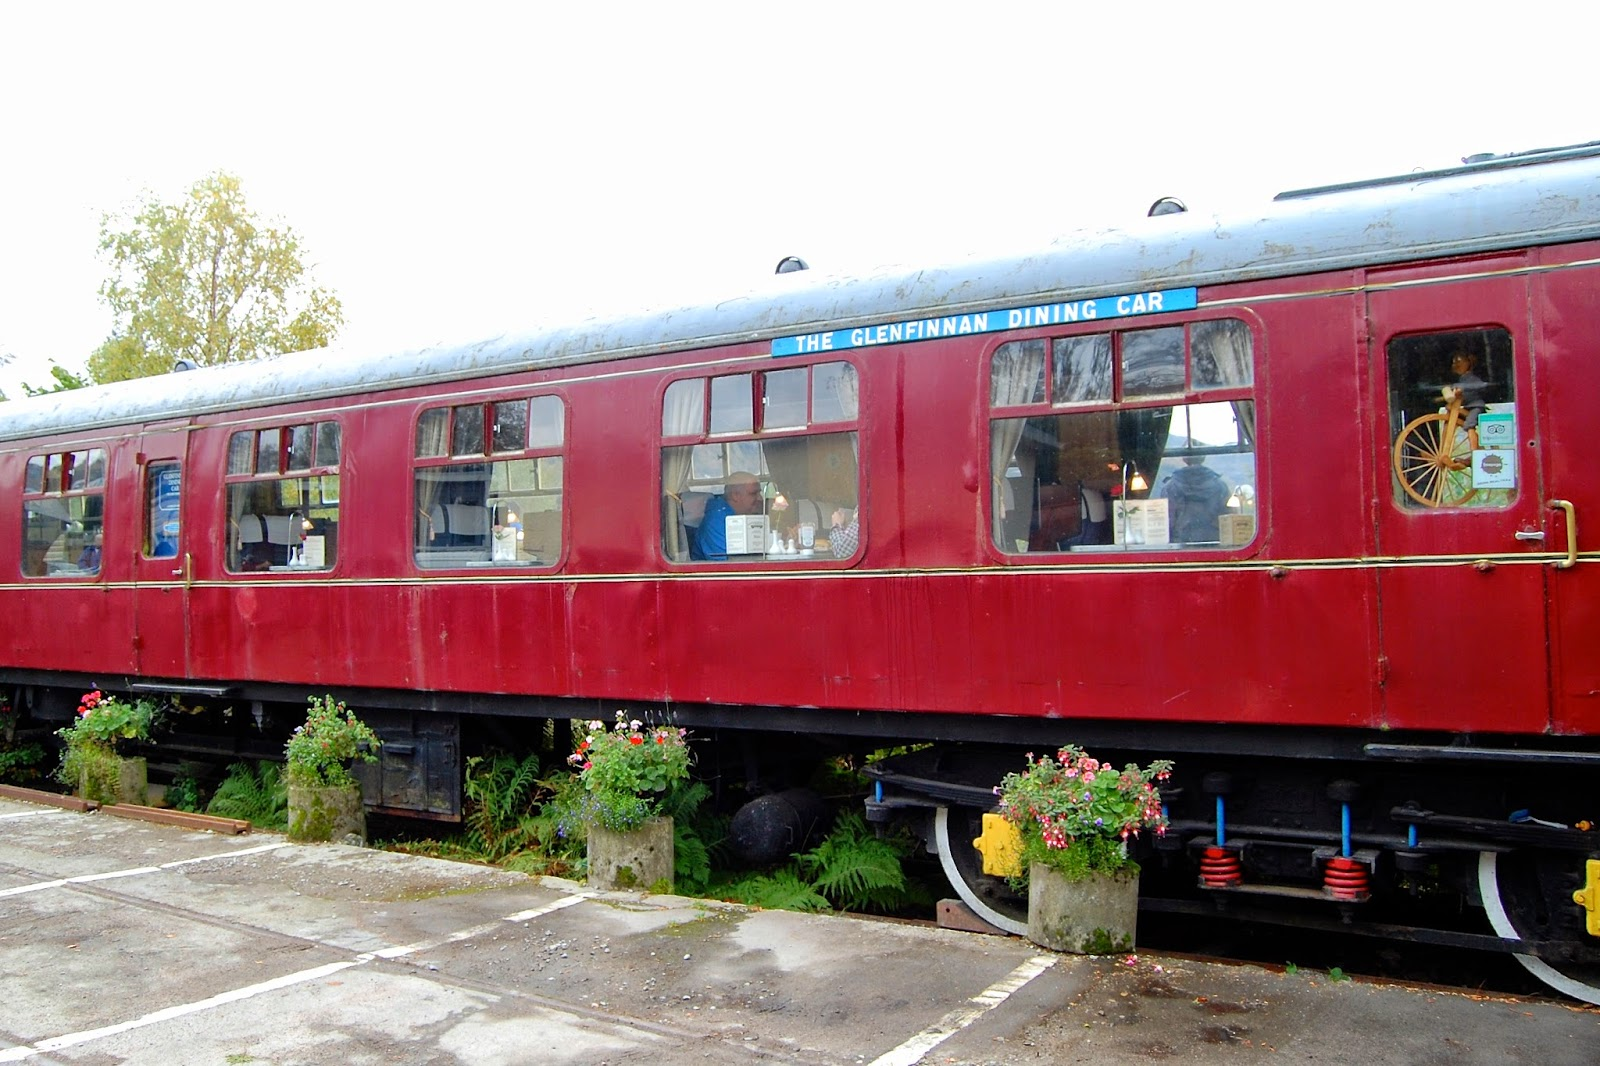 The Glenfinnan Dining Car at the Glenfinnan train station